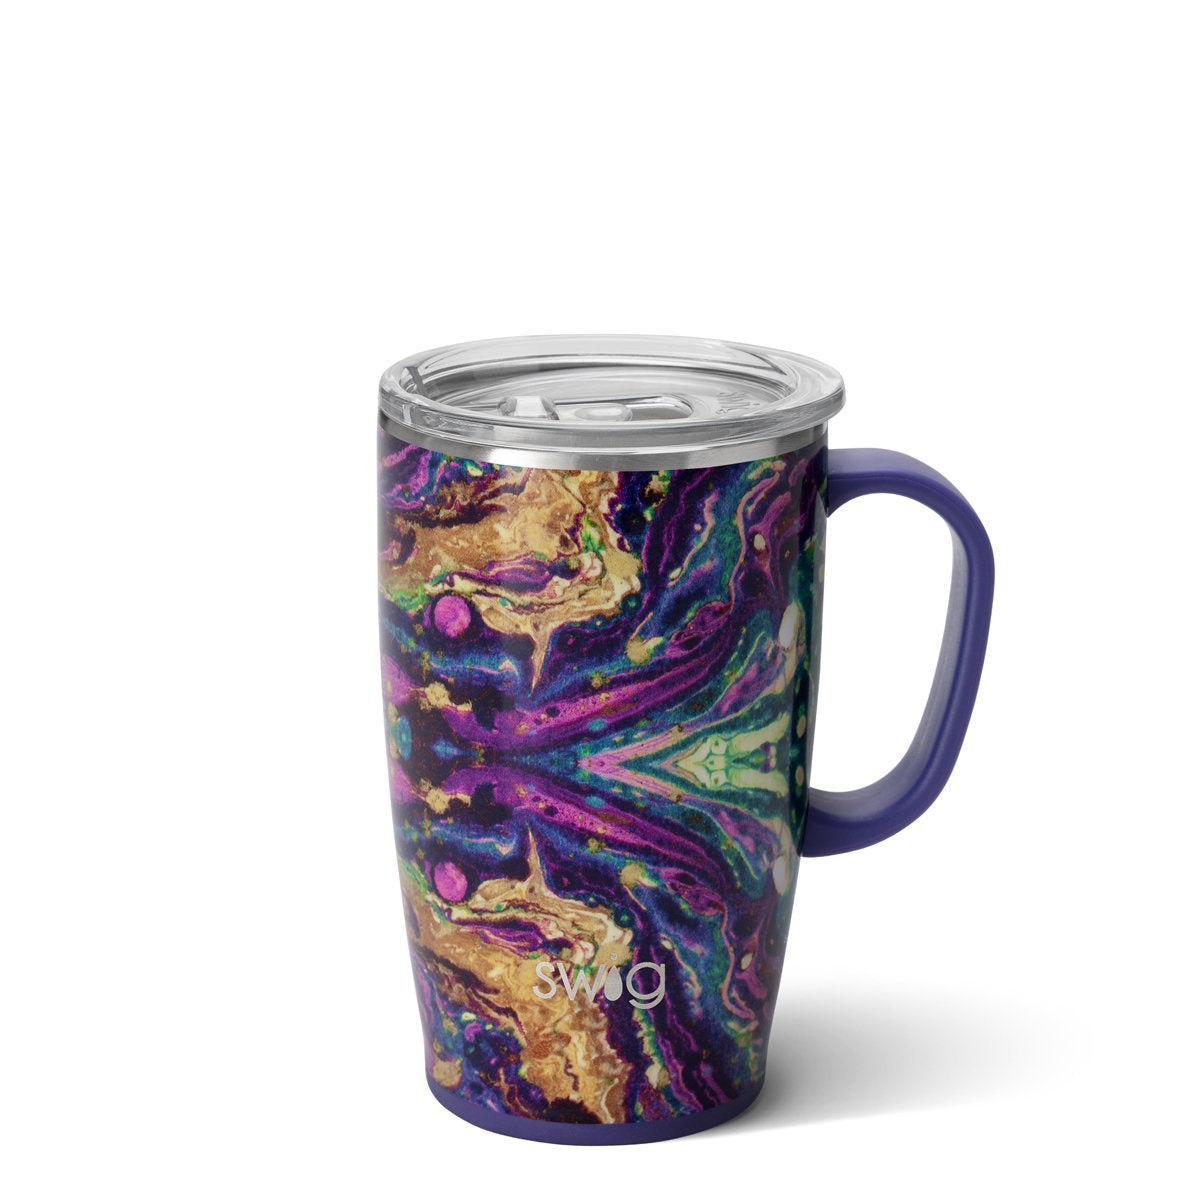 SWIG - 18 OZ MUG IN PURPLE REIGN